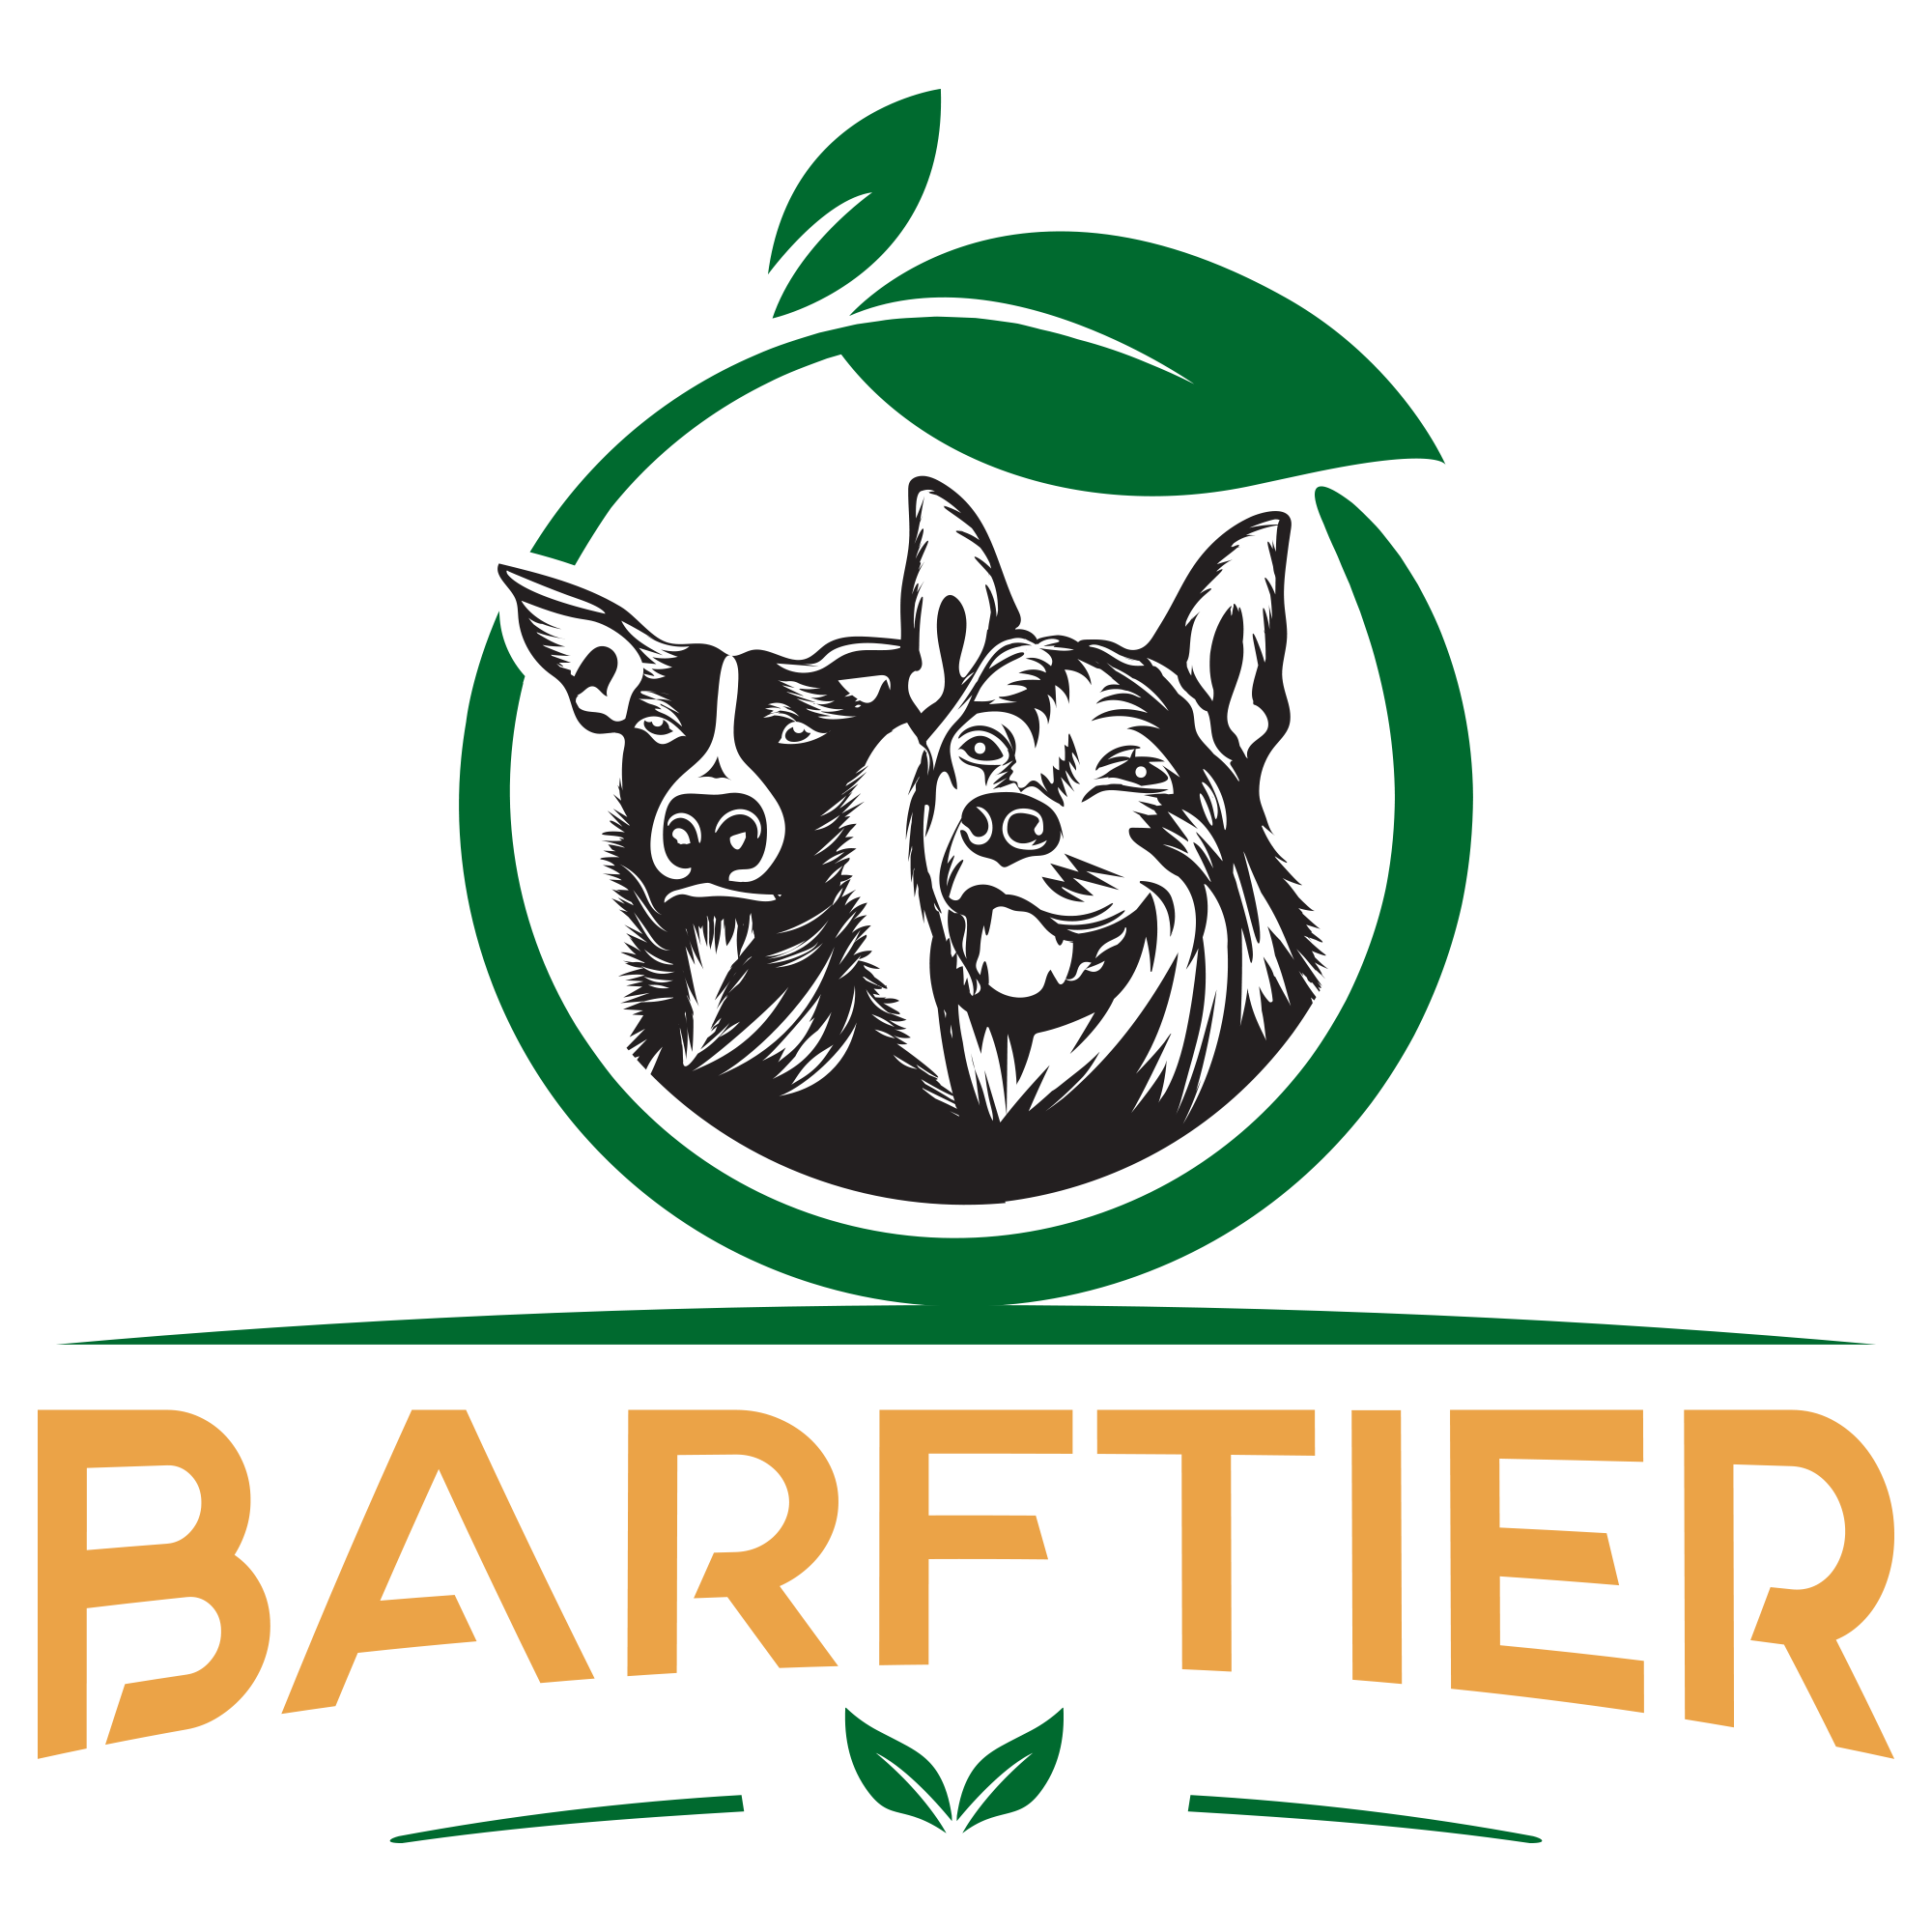 BARFTIER_LOGO_PNG_Final.png